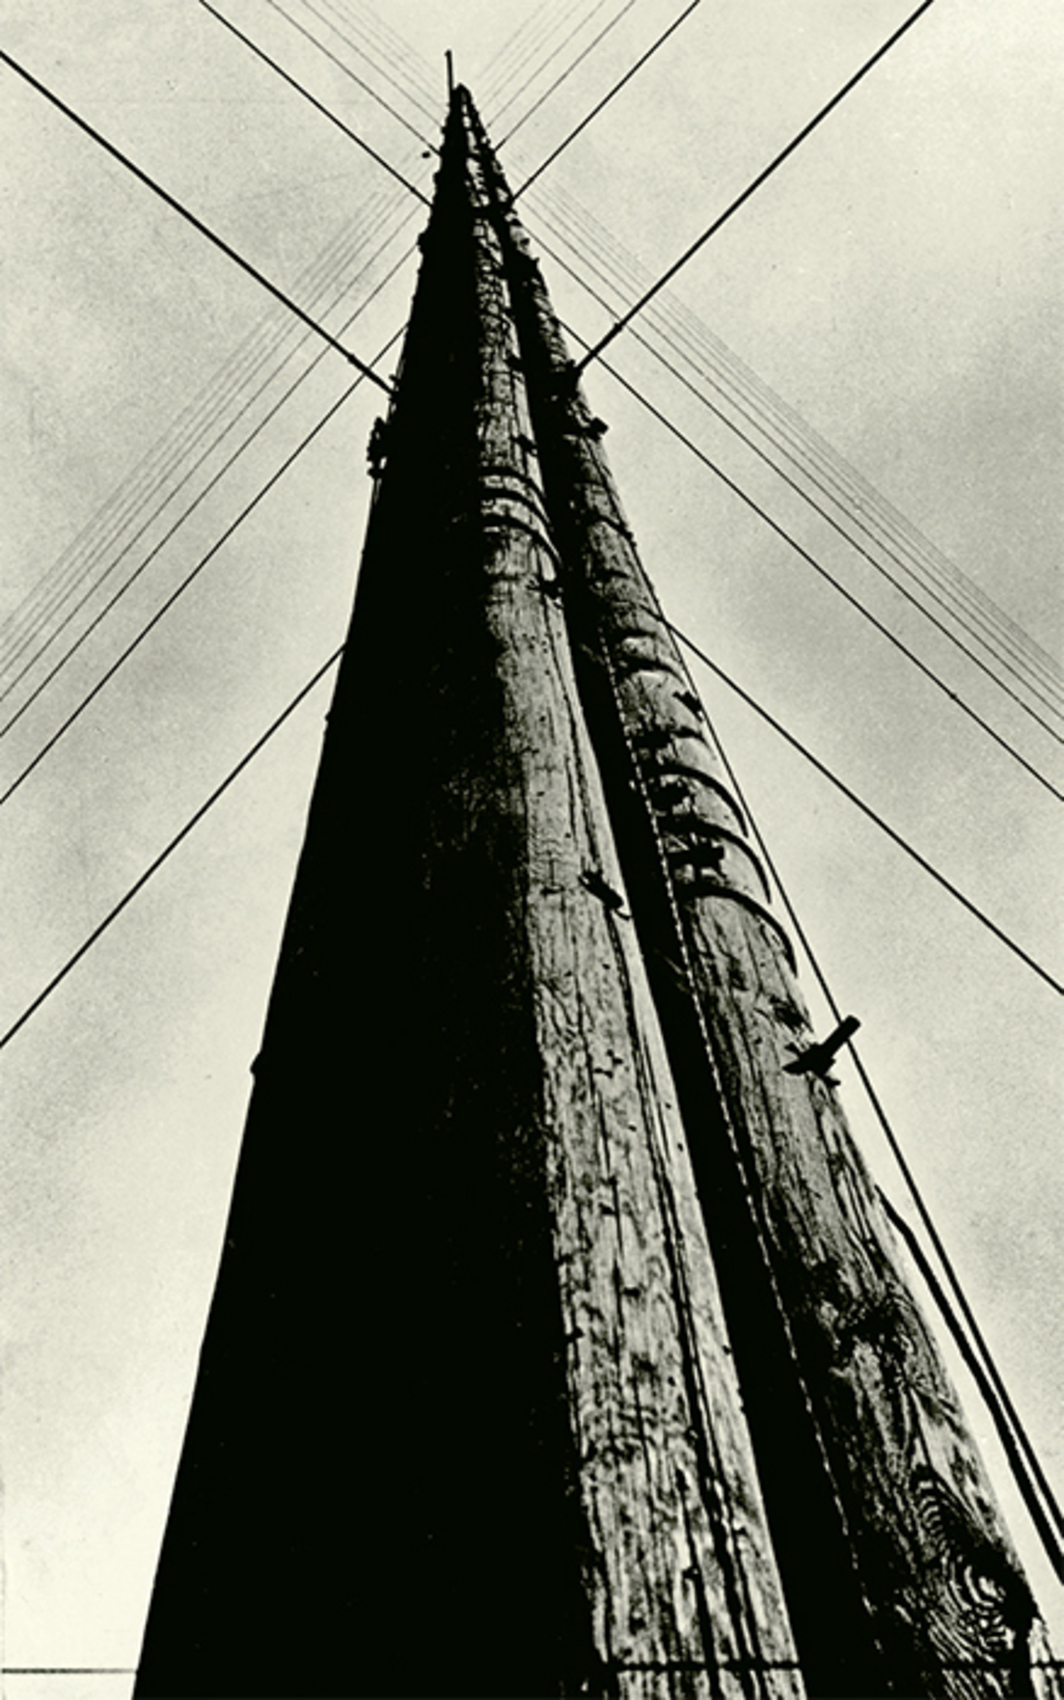 "Aleksandr Rodchenko, Radio Station Tower, 1929, gelatin silver print, 8 7/8 × 5 5/8"". From ""Adventures of the Black Square: Abstract Art and Society 1915–2015."" © Estate of Alexander Rodchenko/RAO, Moscow/Licensed by VAGA, New York, NY."